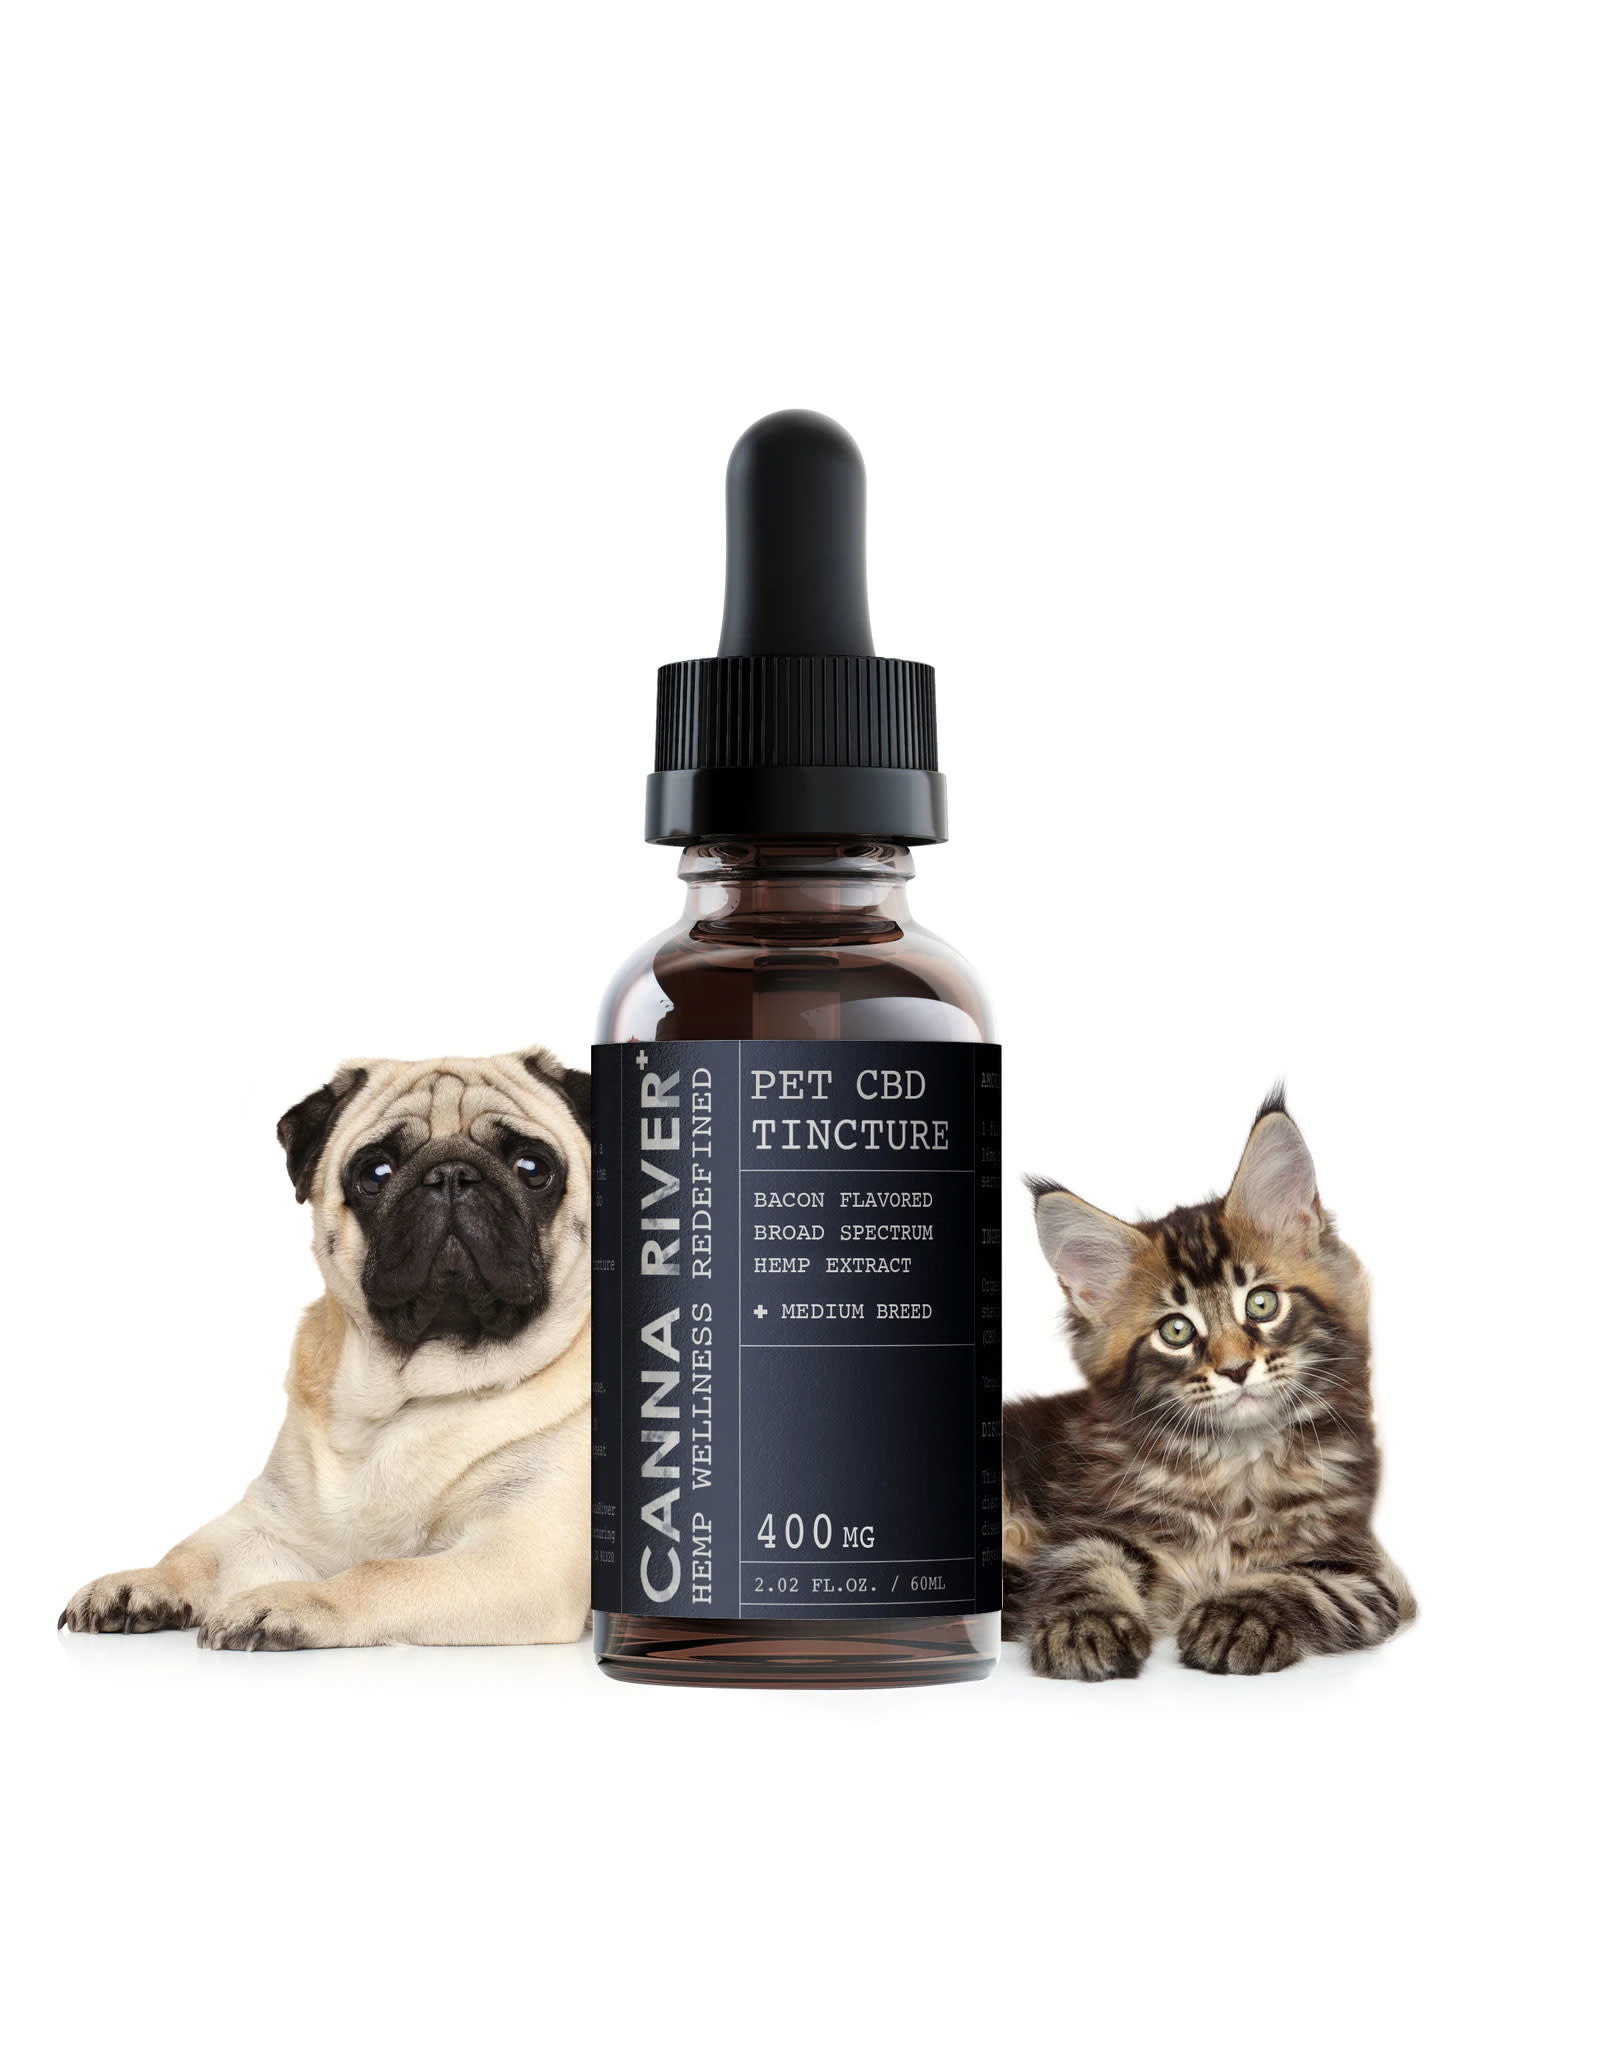 Canna River Canna River Broad Spectrum Bacon Med Pet 400mg 2oz